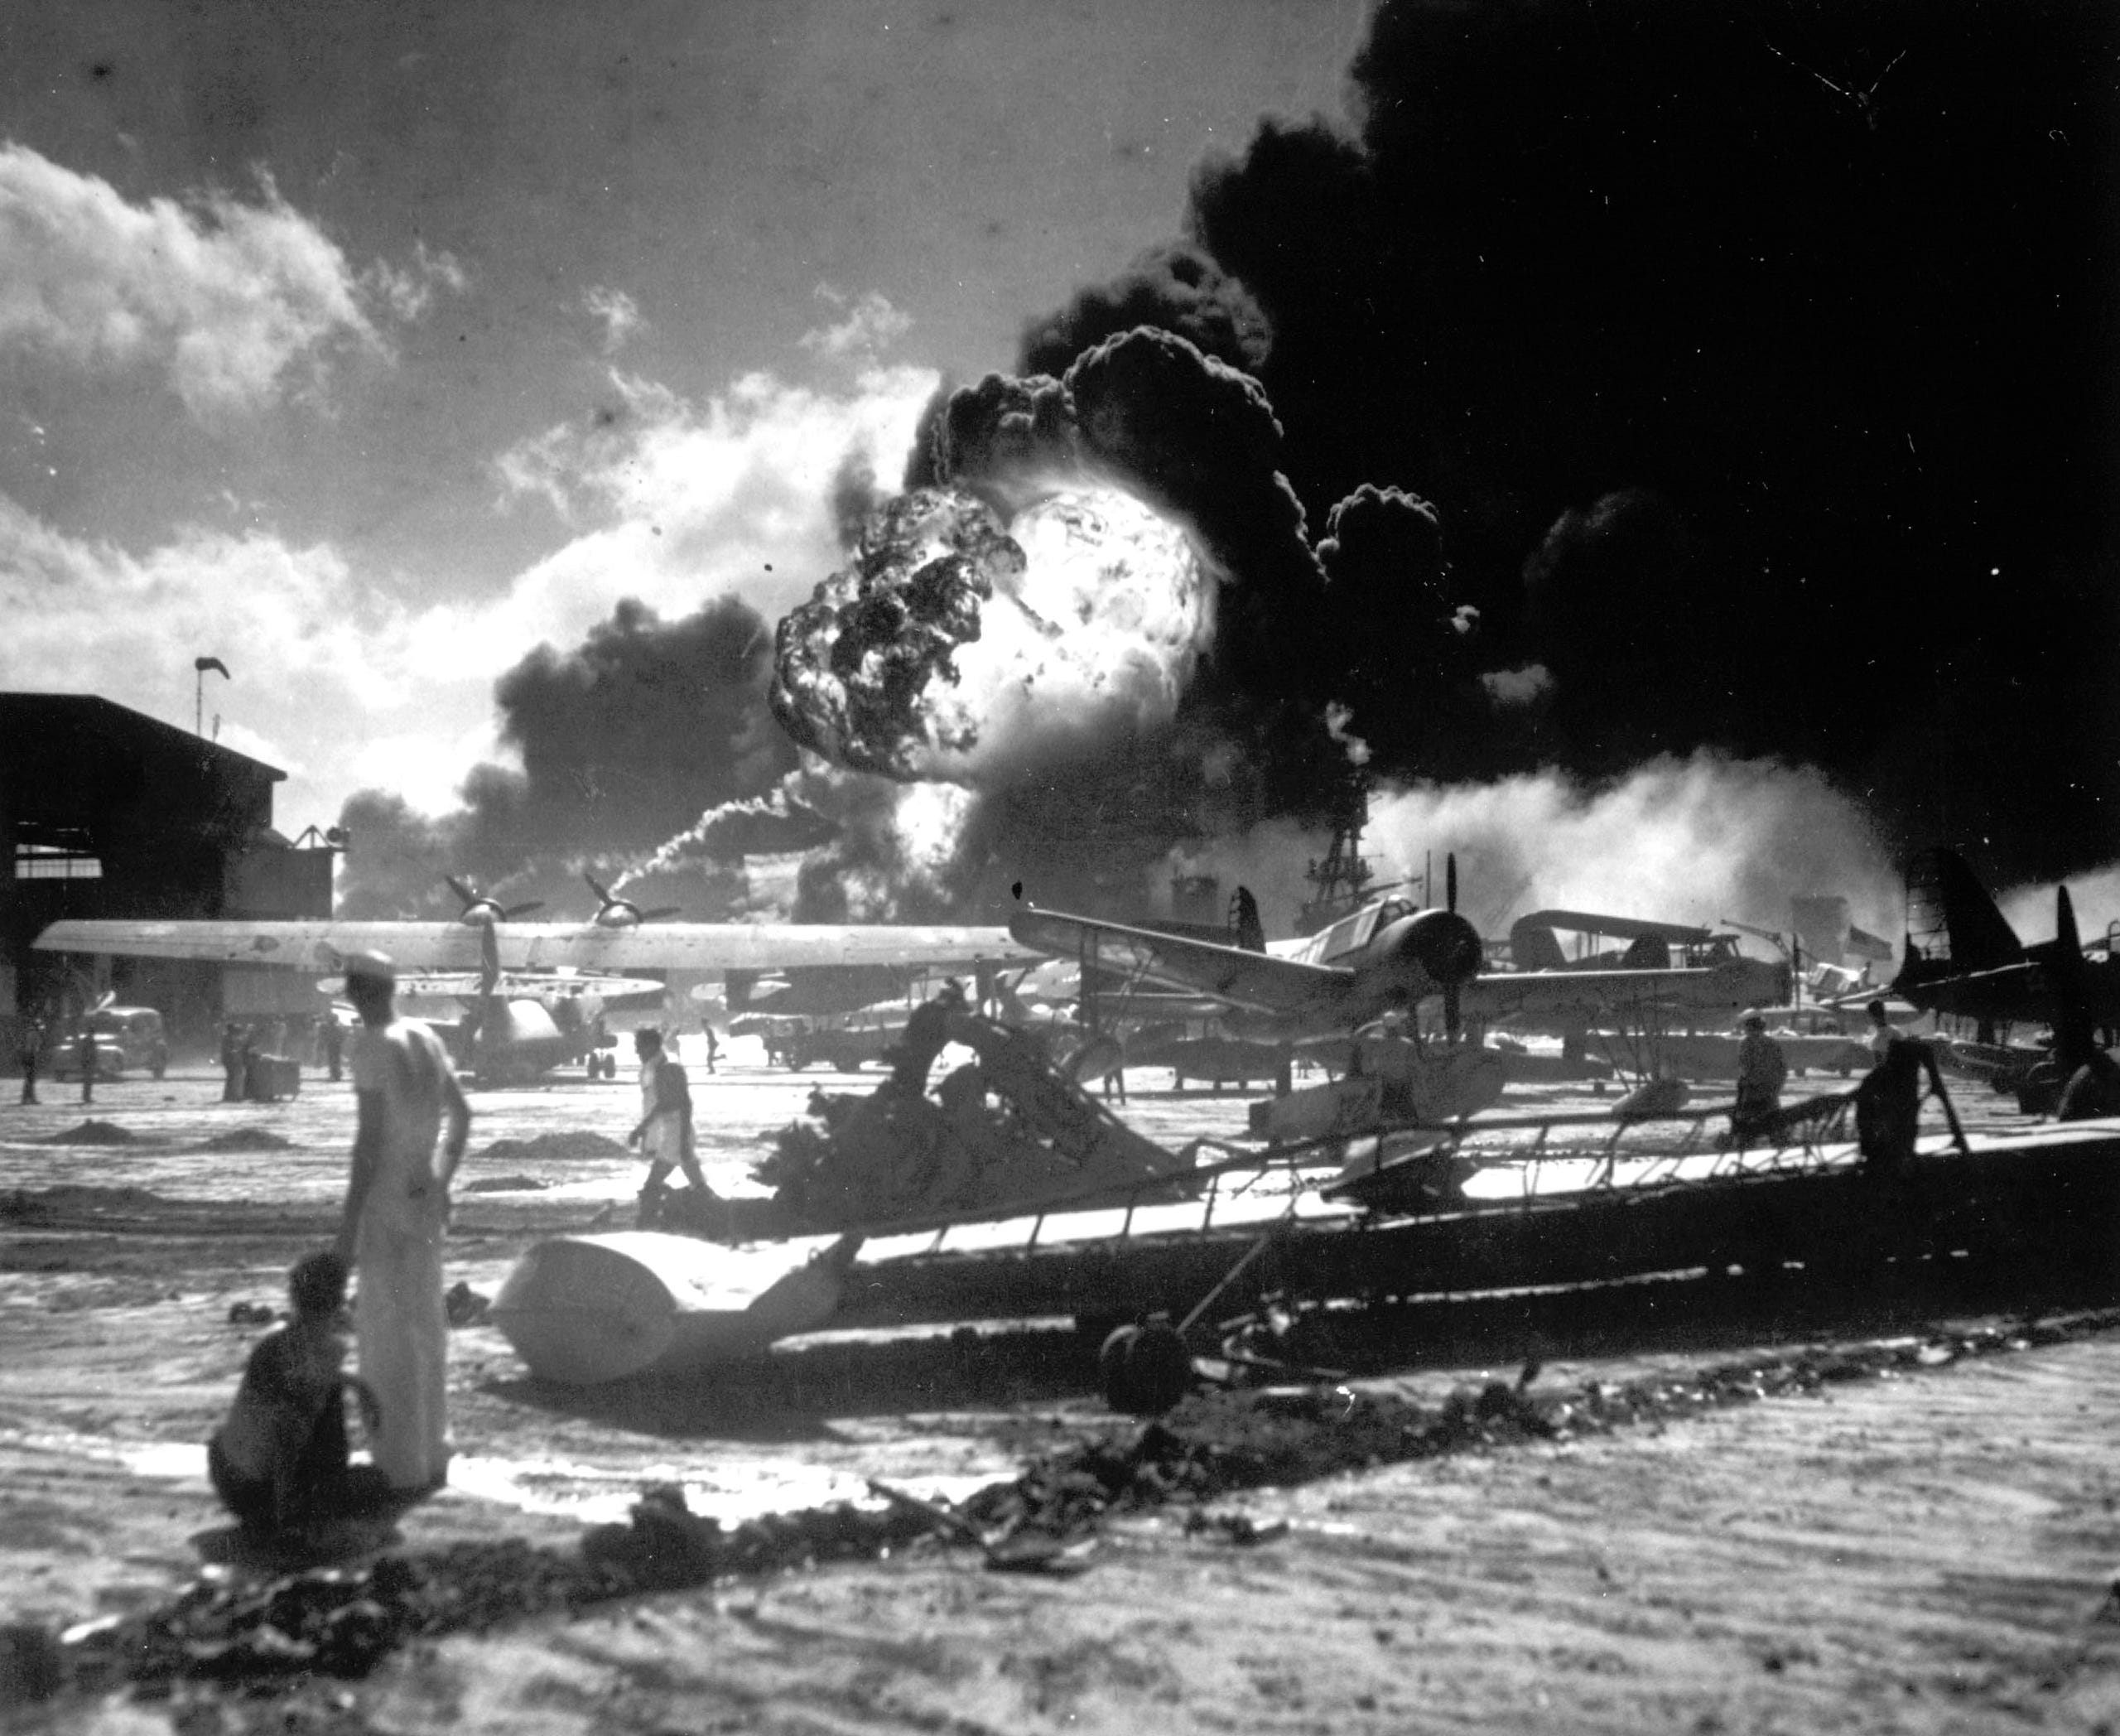 Staggering photos from the attack on Pearl Harbor: Dec. 7, 1941